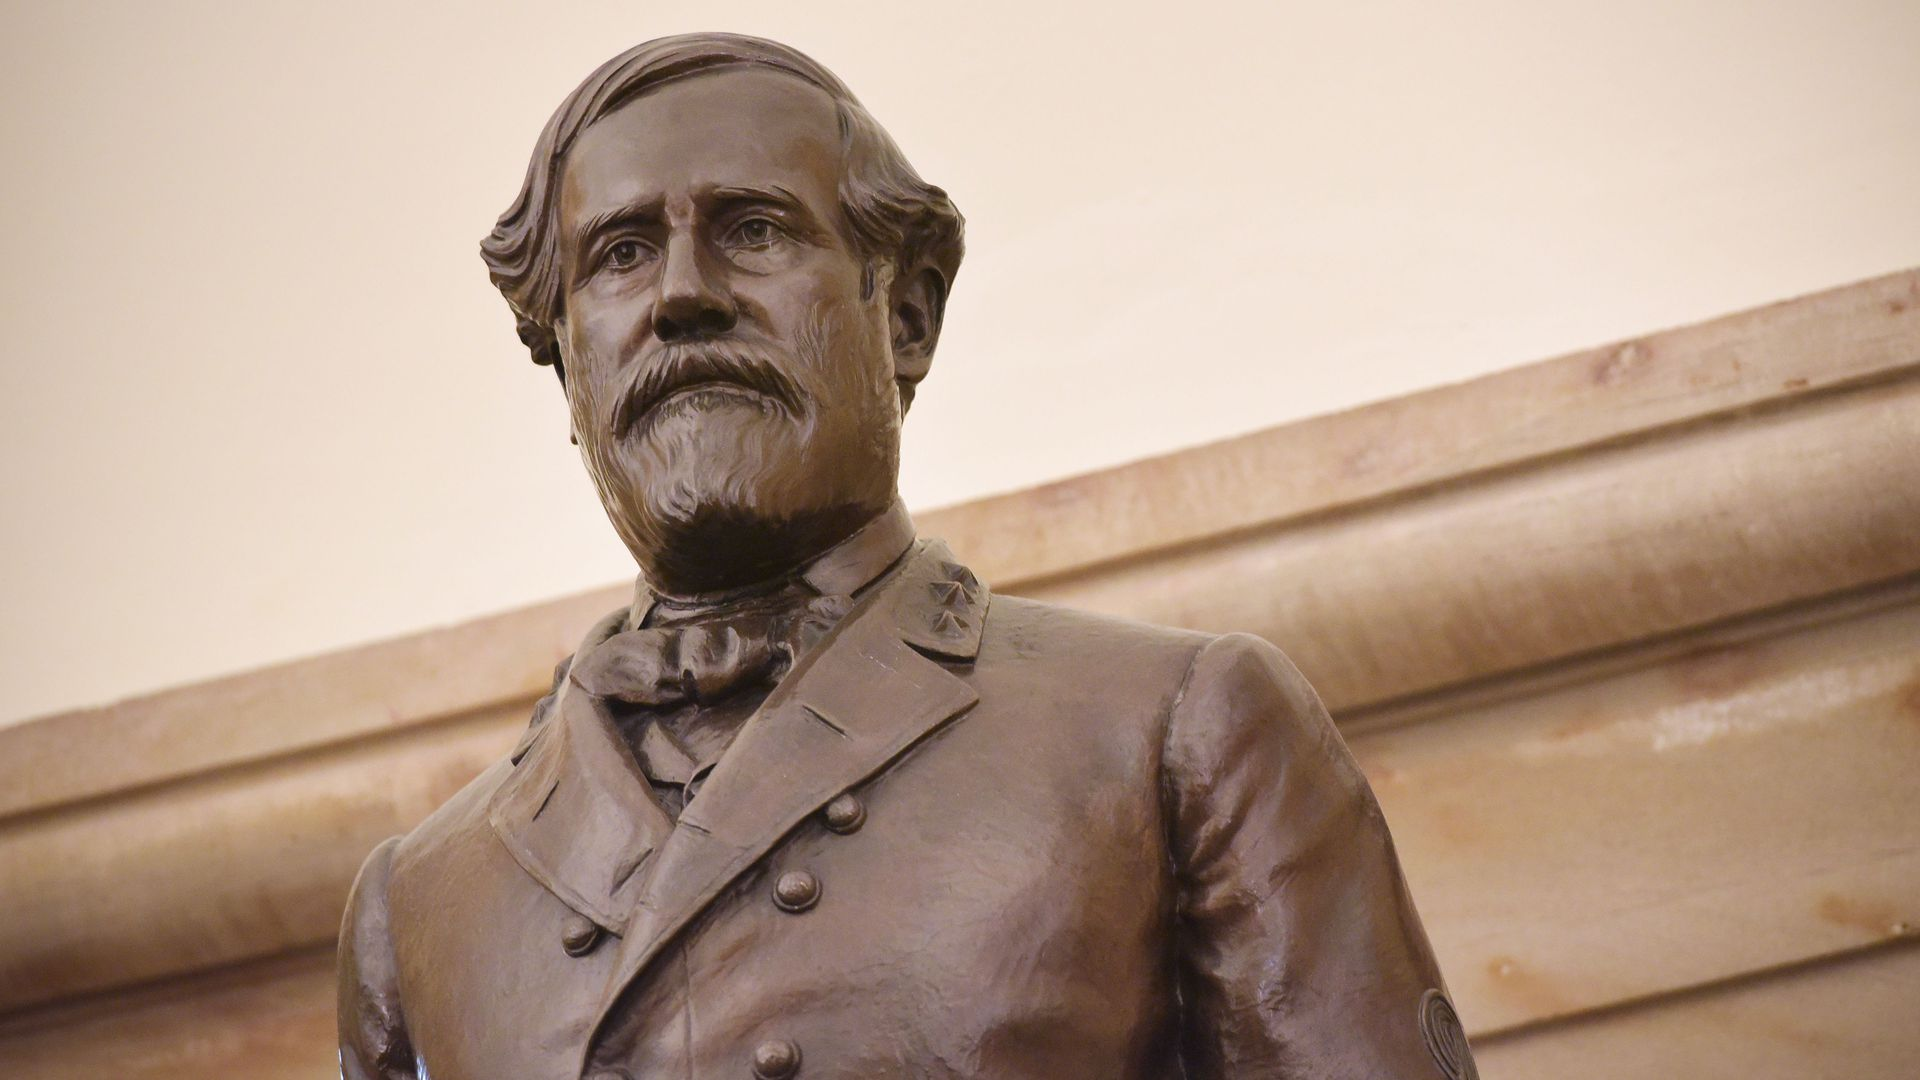 The statue of Robert E. Lee